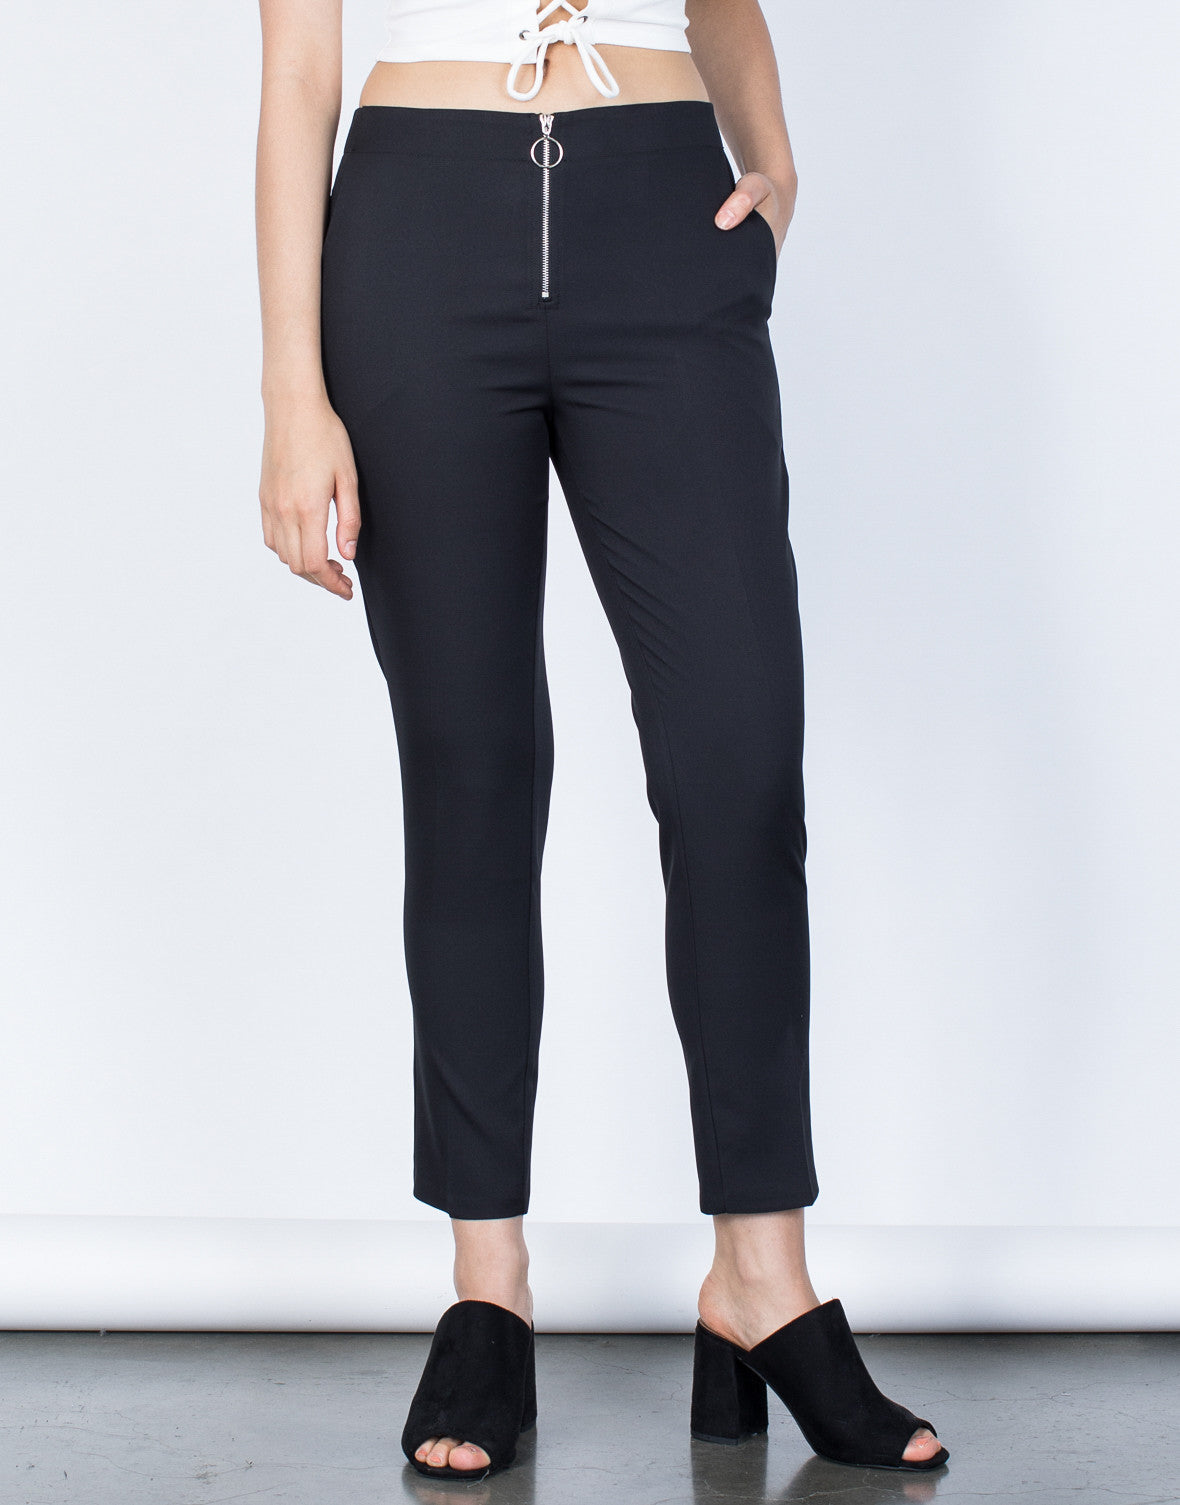 Zipped Ring Pants